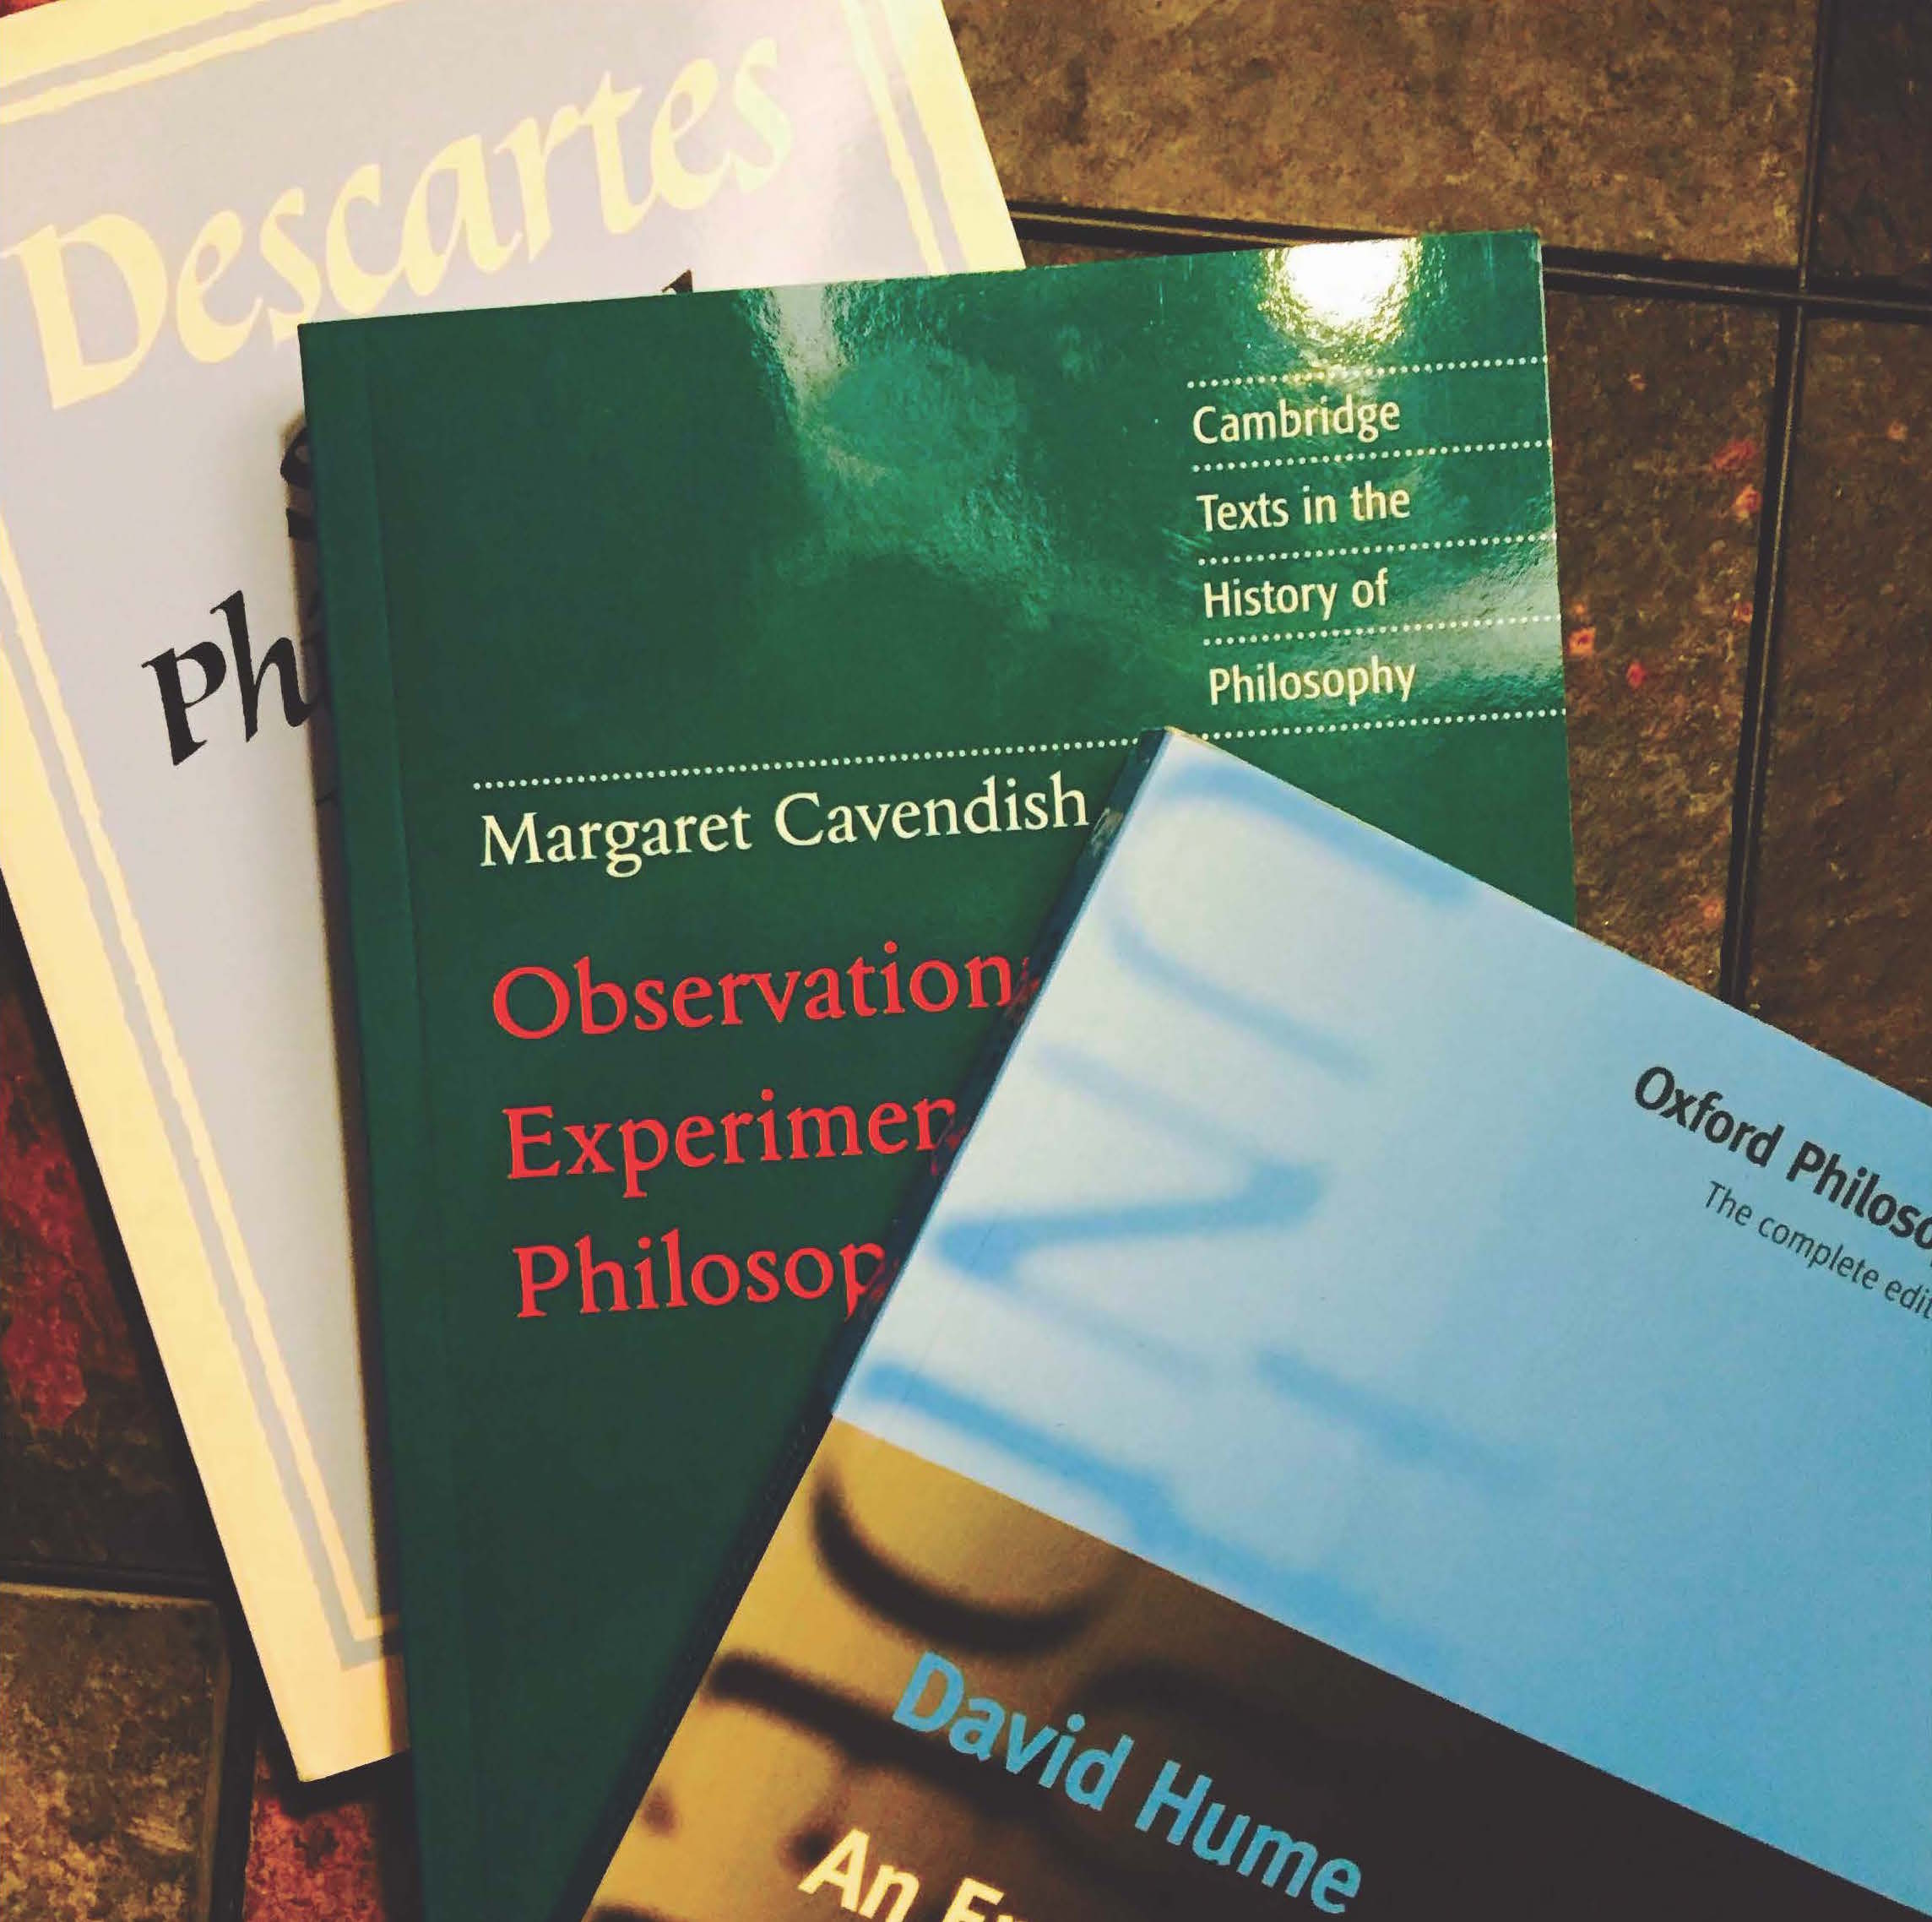 Picture of Philosophy books